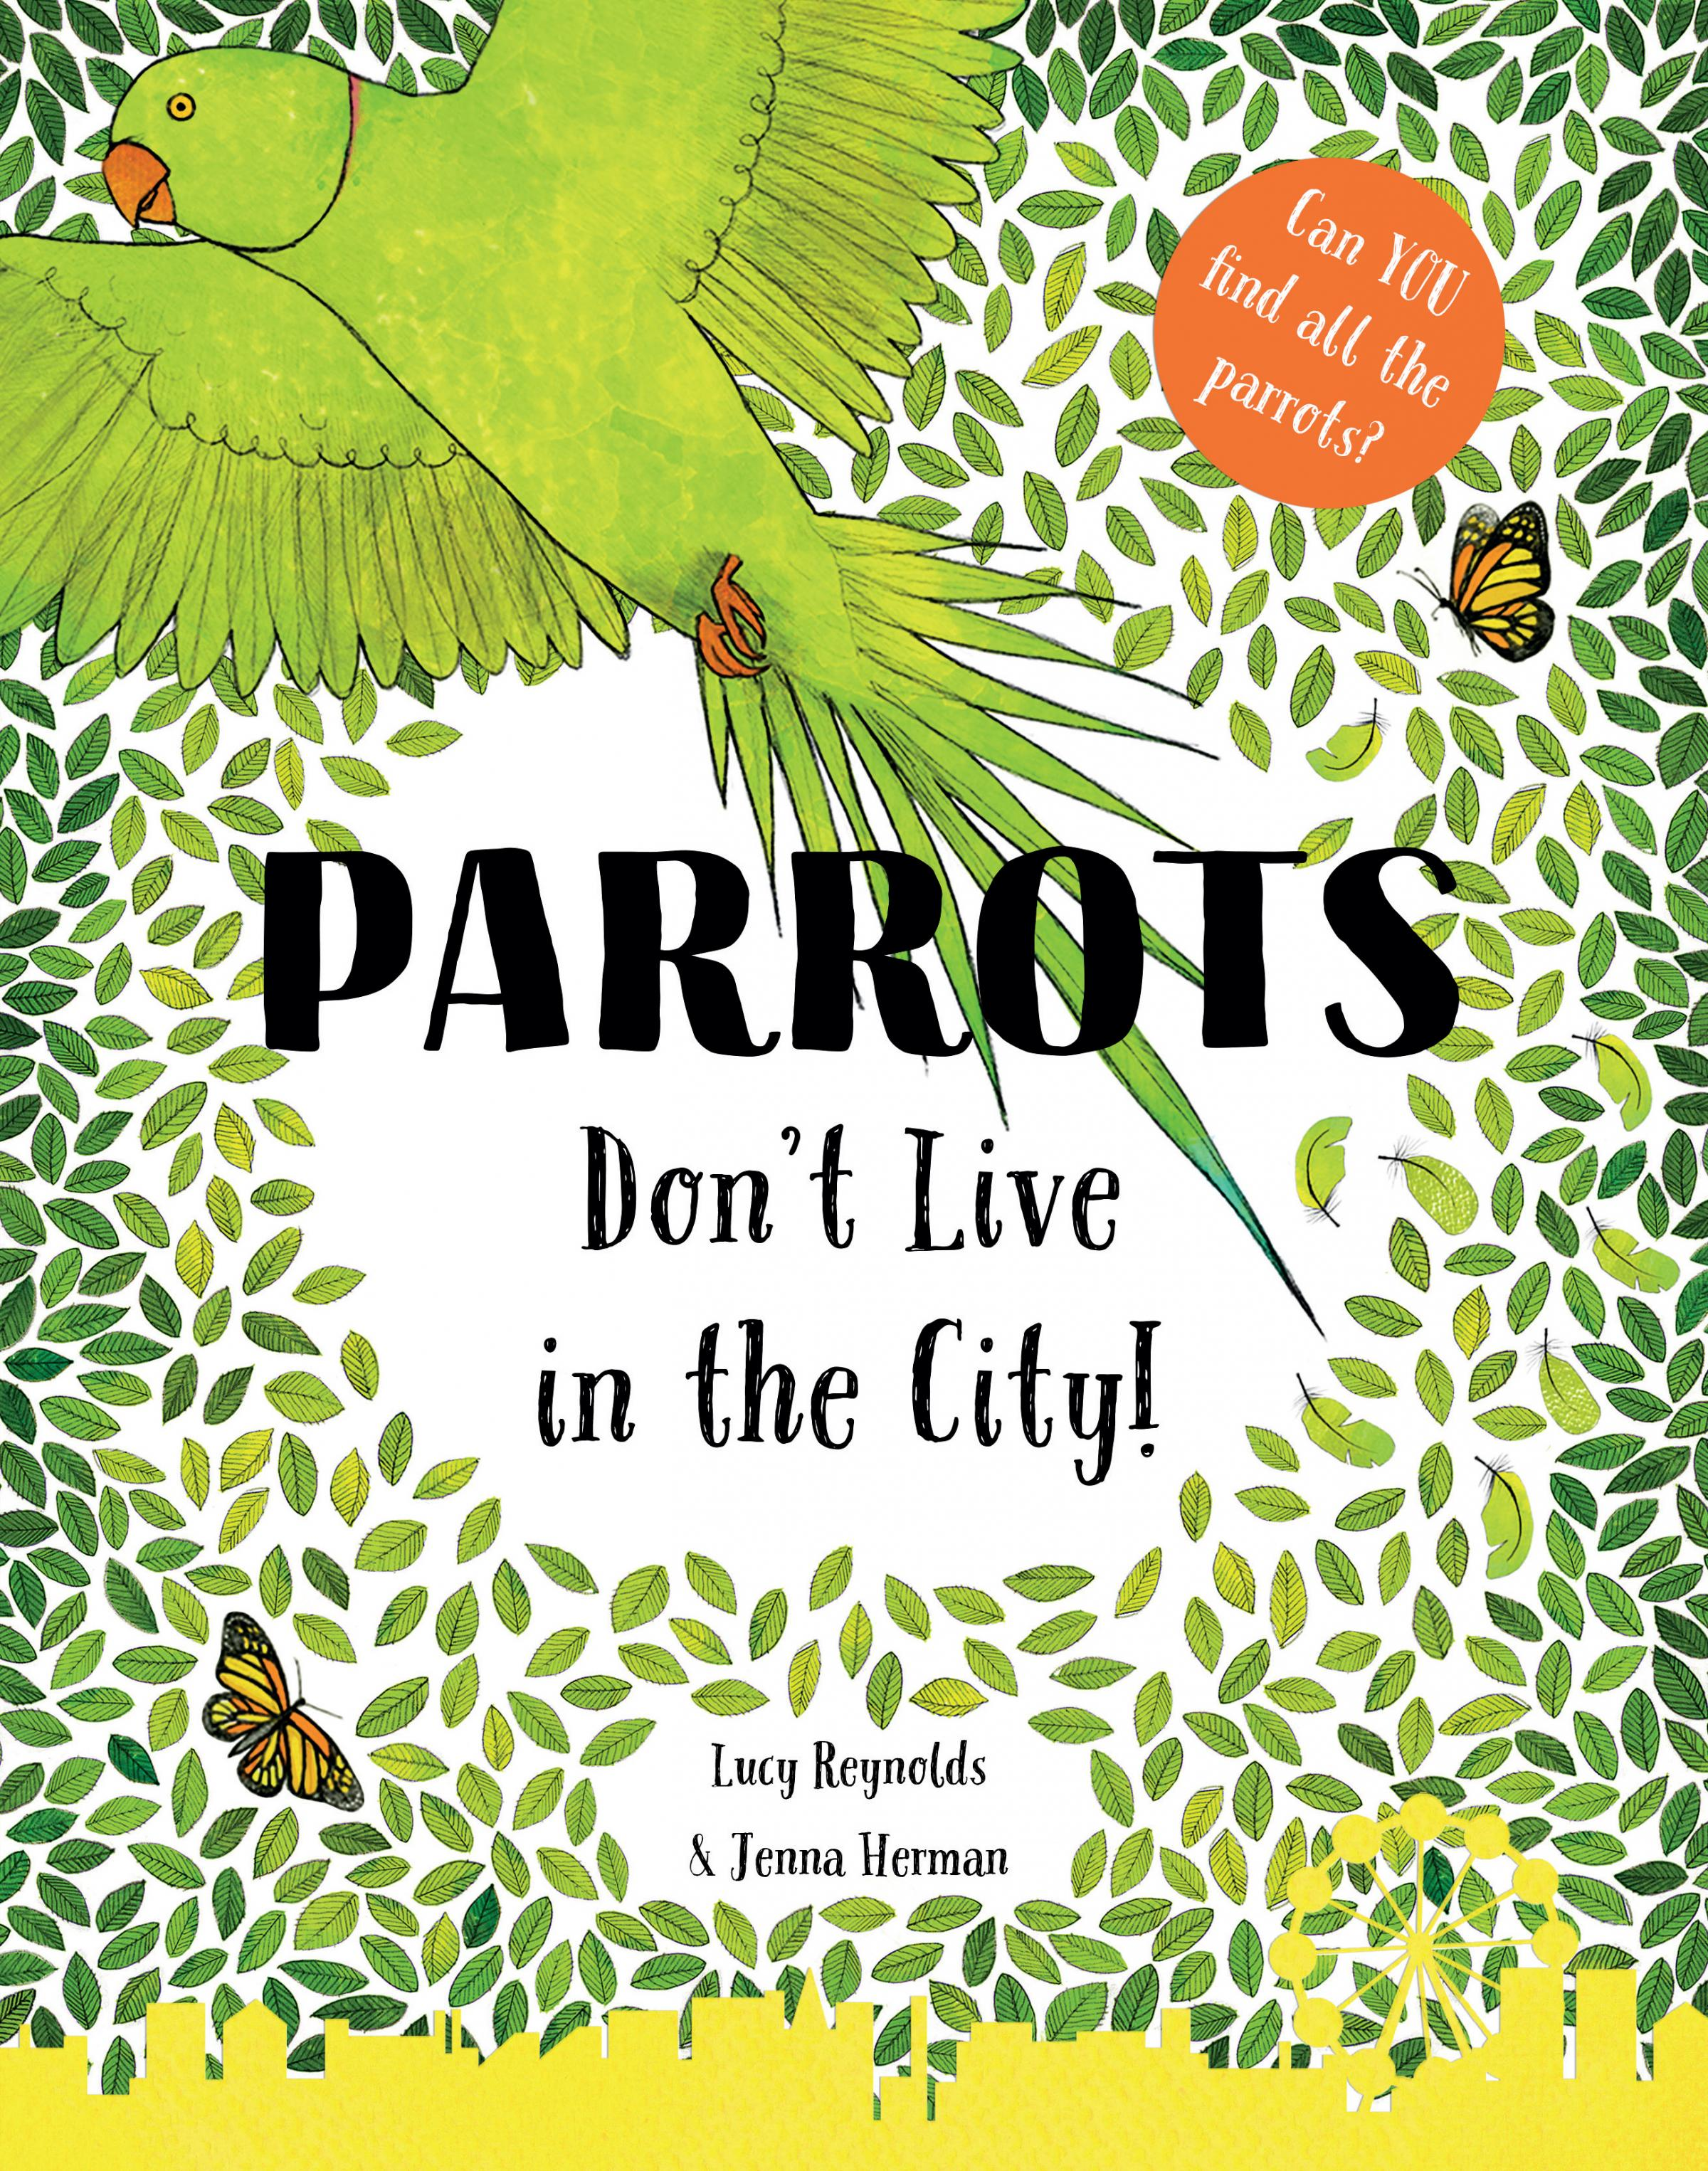 'Parrots Don't Live in the City'